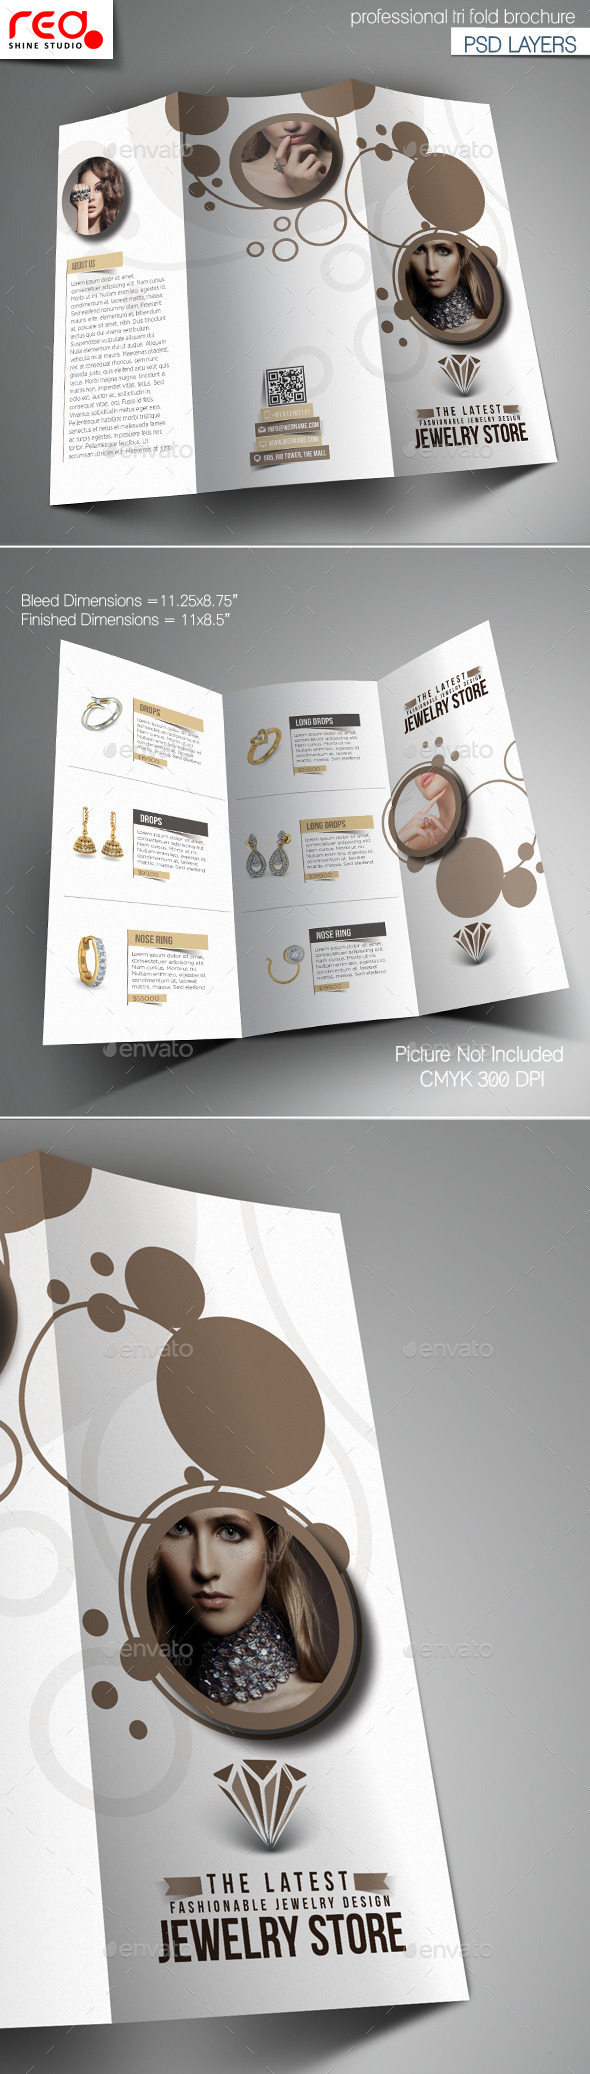 GraphicRiver Jewelry Store Trifold Brochure Template 11011133